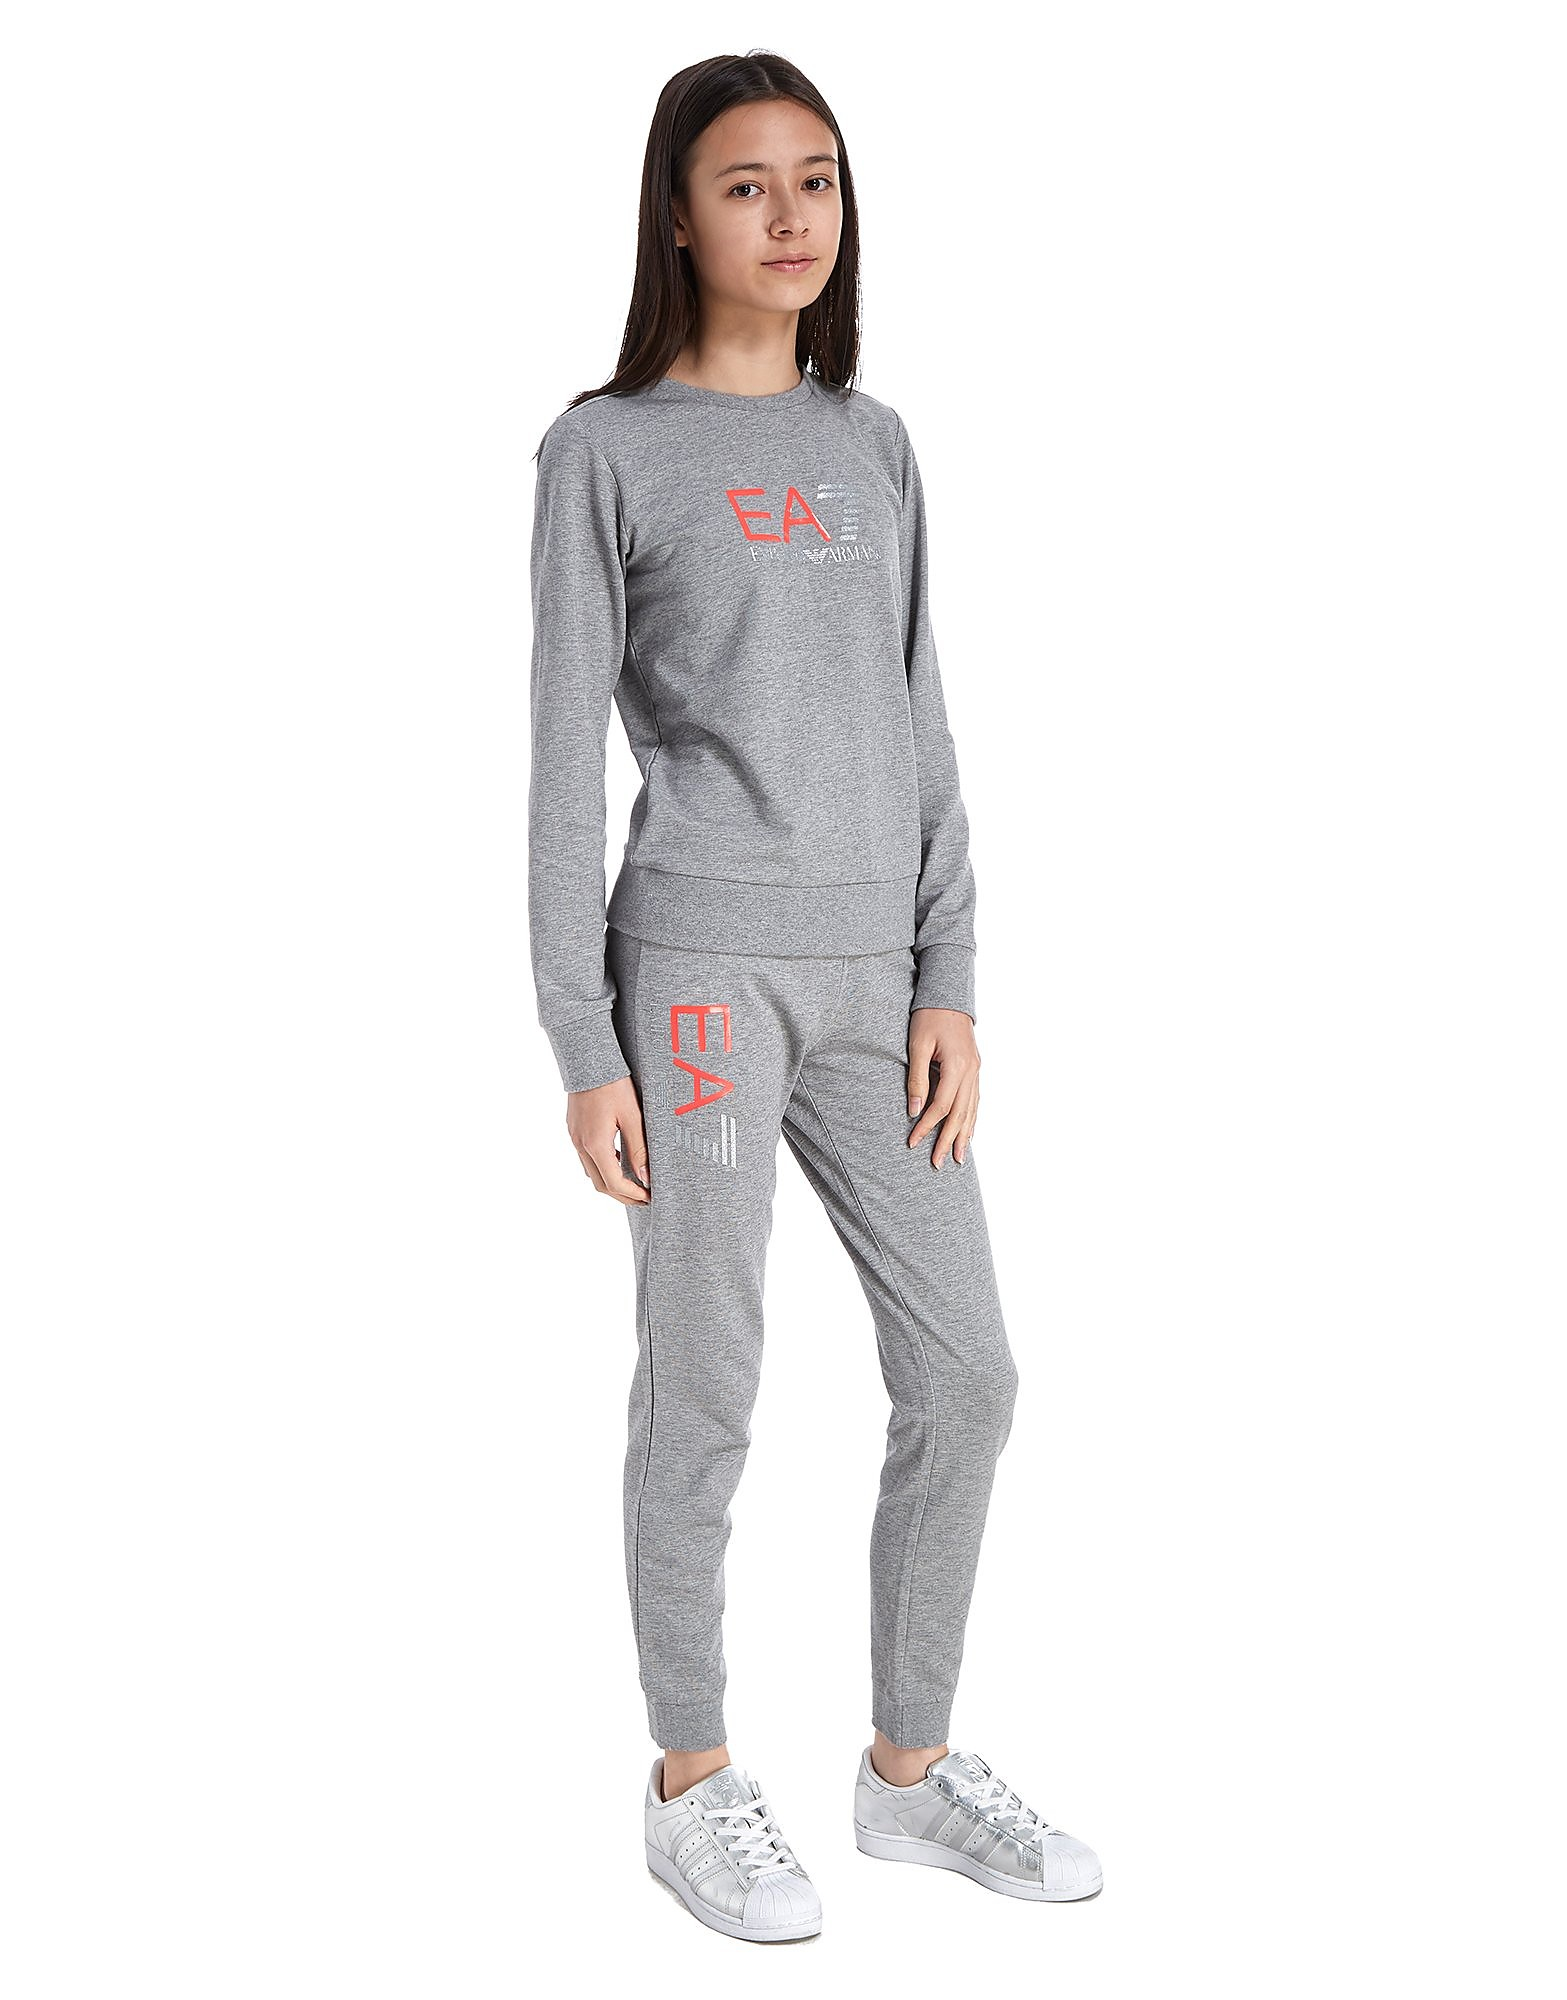 Emporio Armani EA7 Girls' Crew Trainingspak Junior